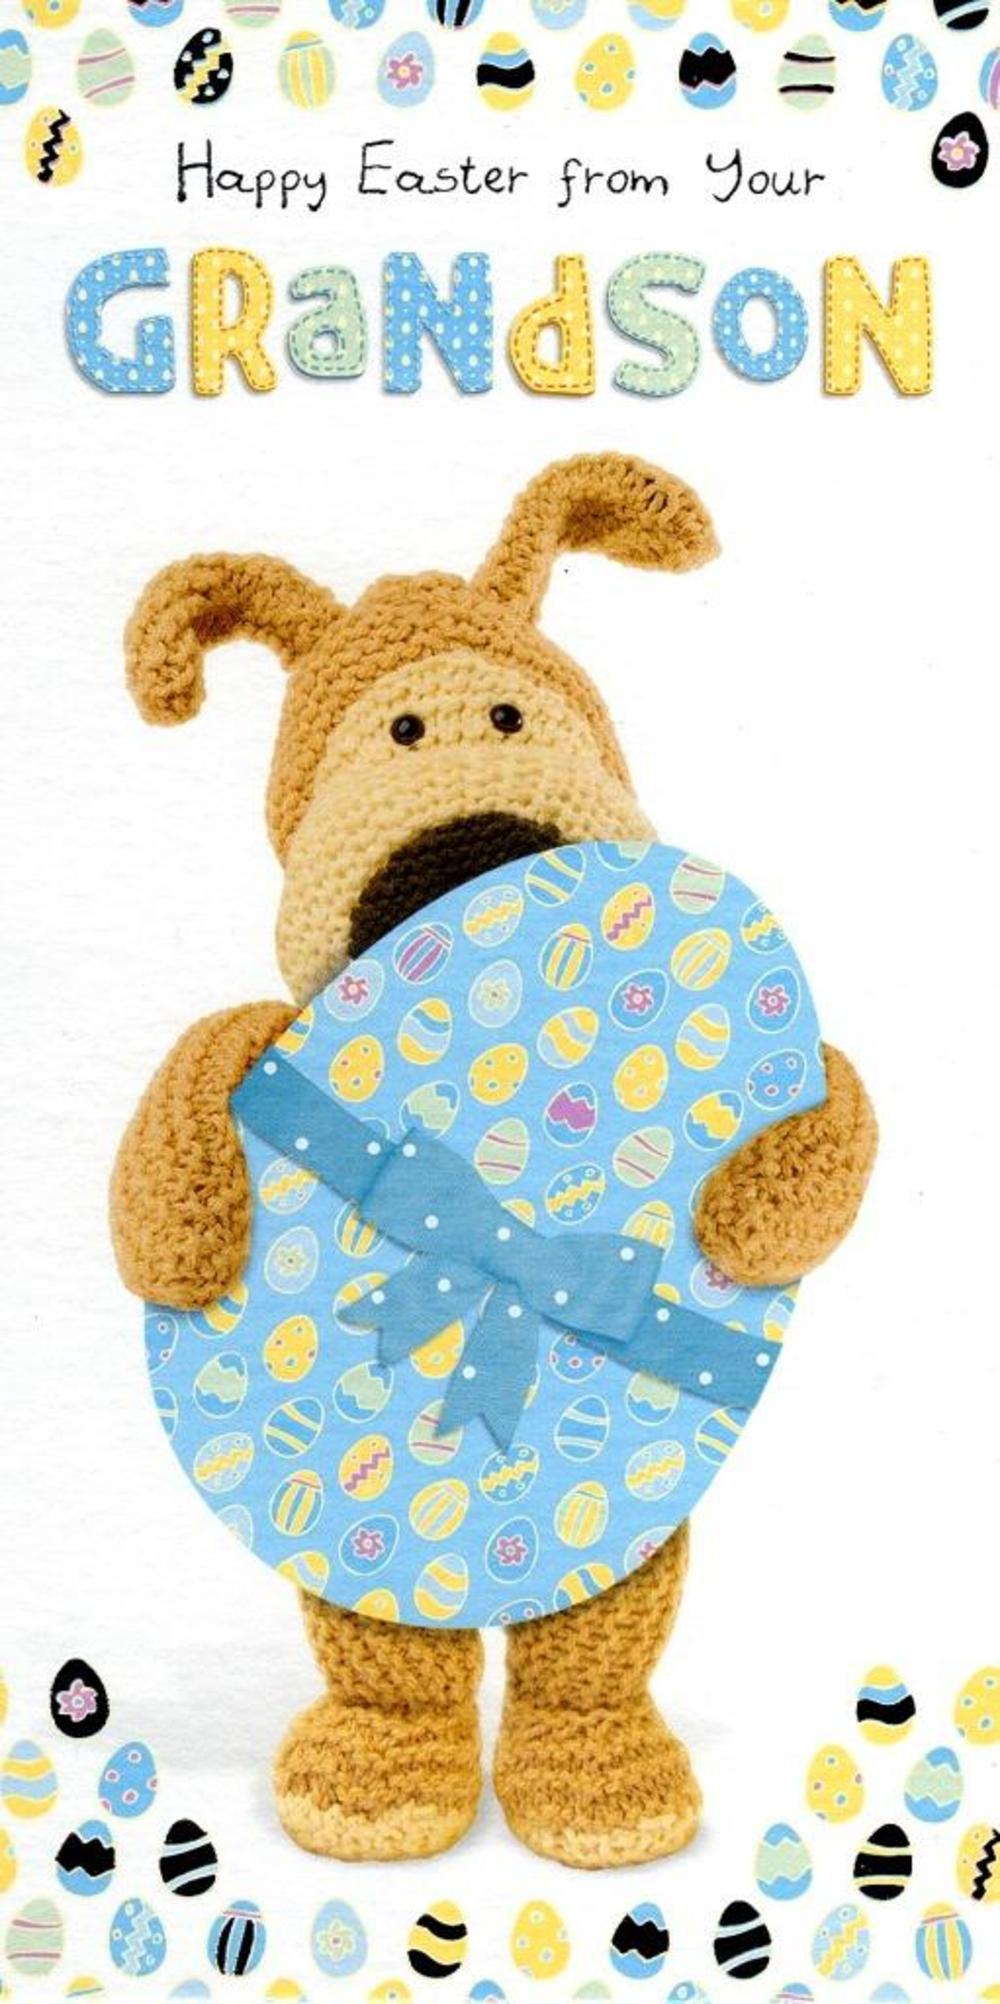 Boofle Grandson Happy Easter Greeting Card